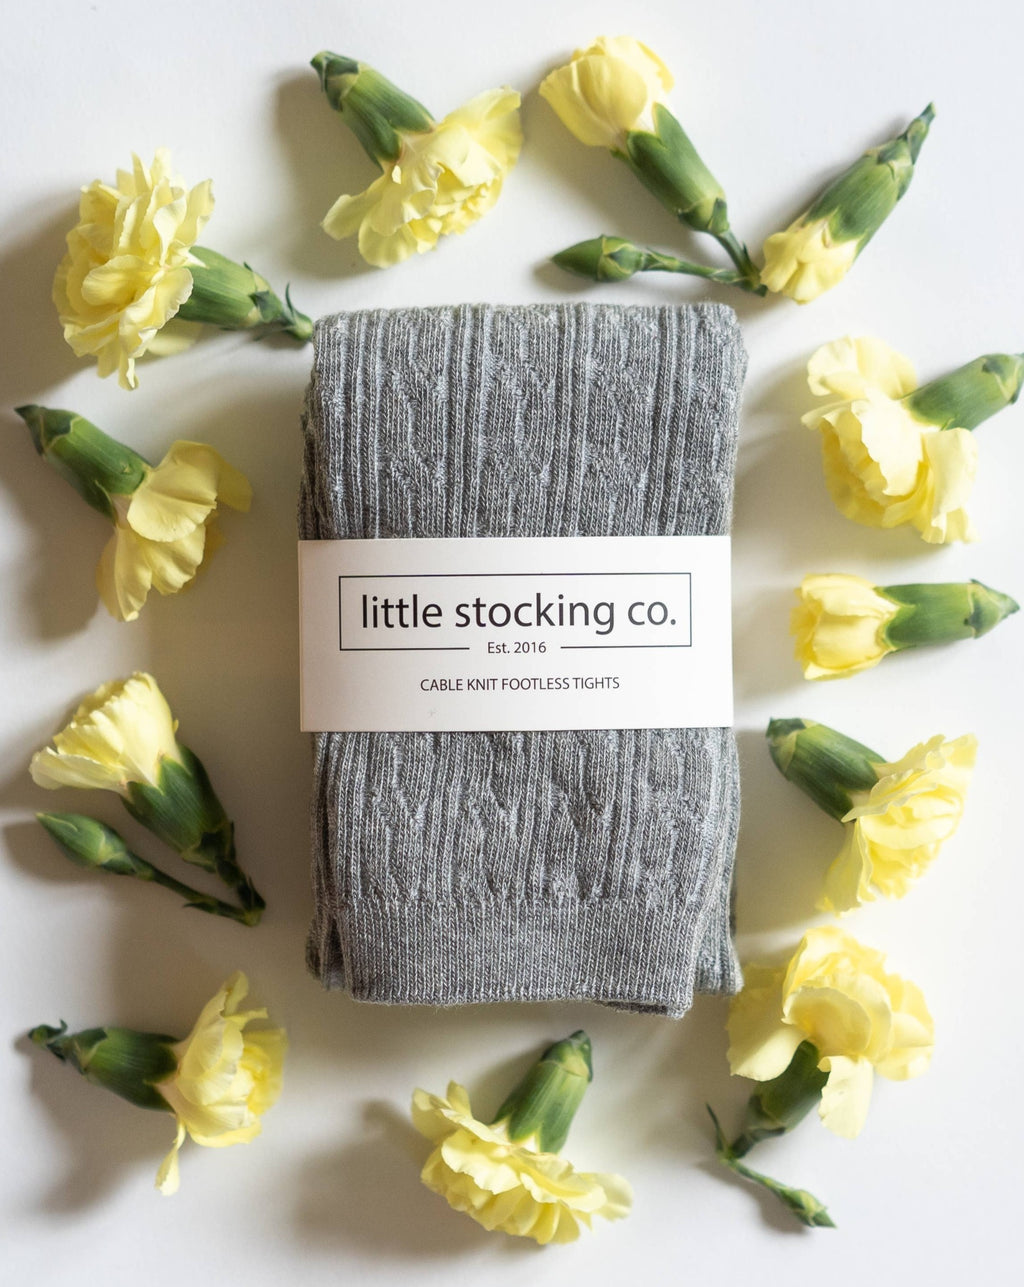 Little Stocking Co. Cable Knit Footless Tights